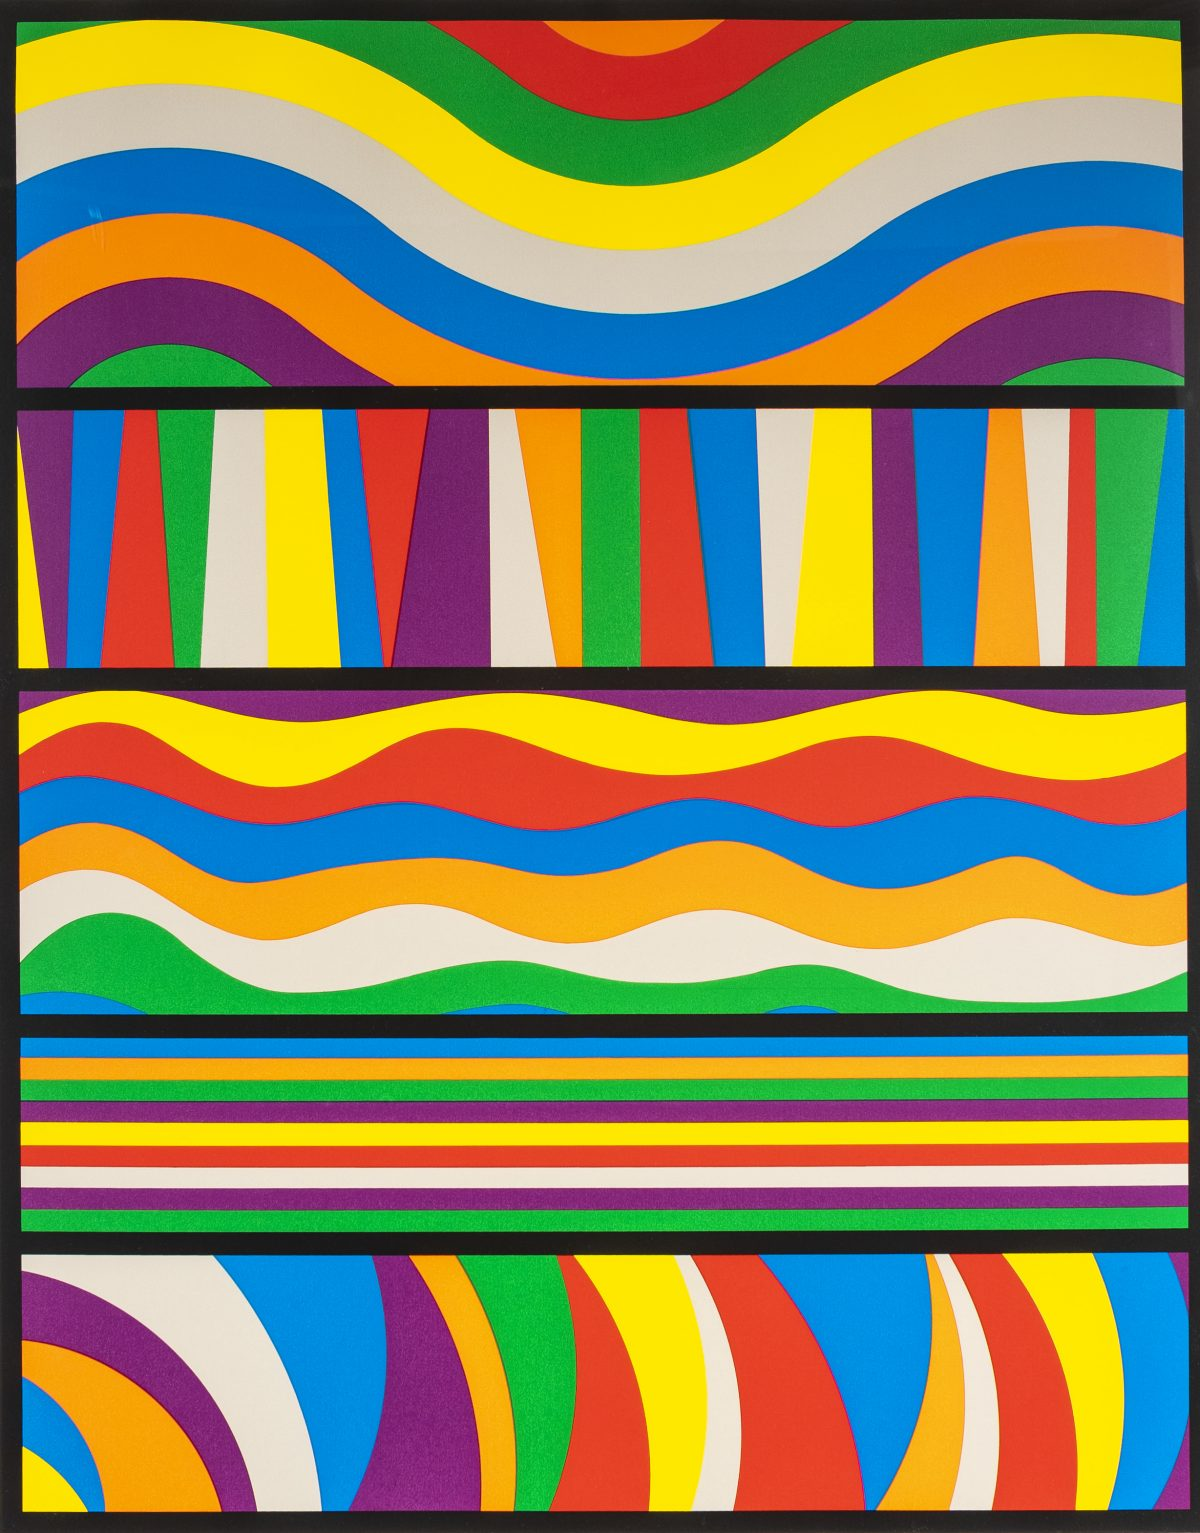 Sol LeWitt - Untitled (Waves and Lines)